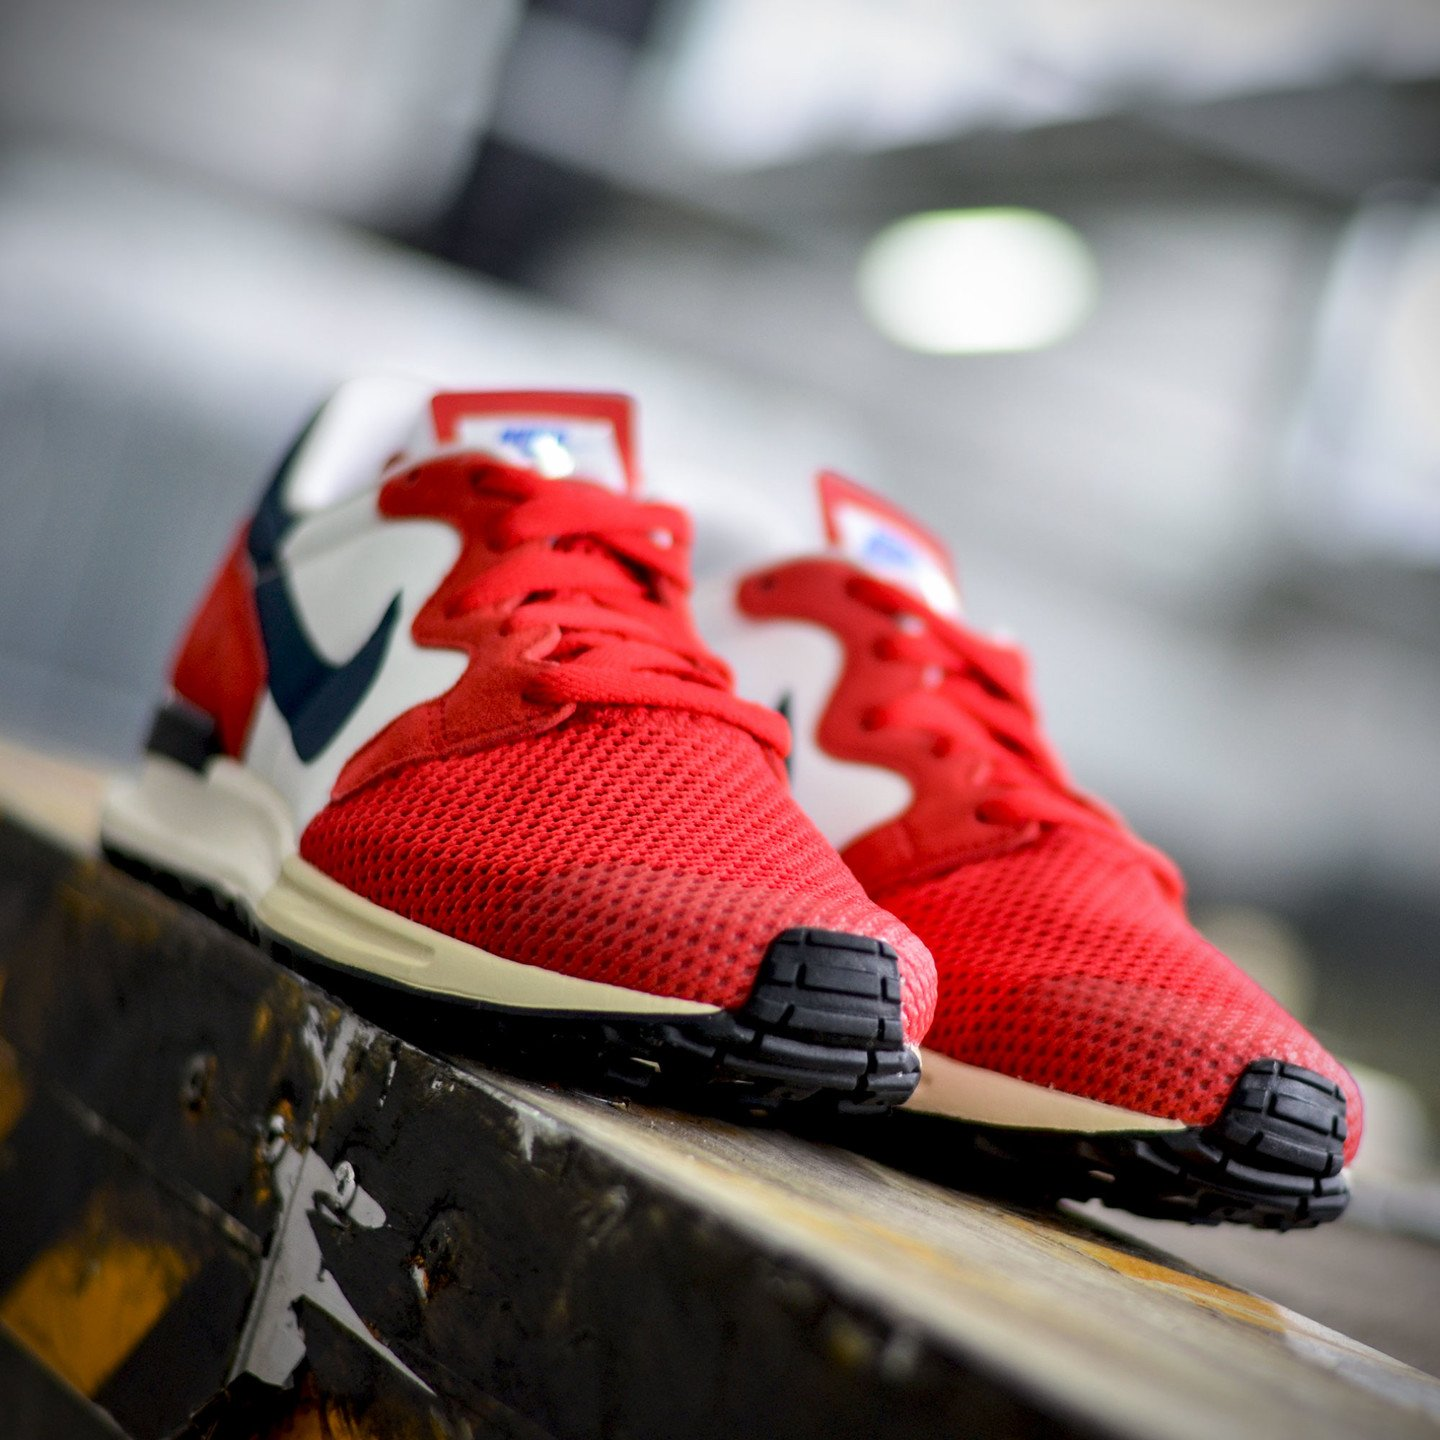 Nike Air Berwuda University Red / Squadron Blue / Summit White 555305-601-45